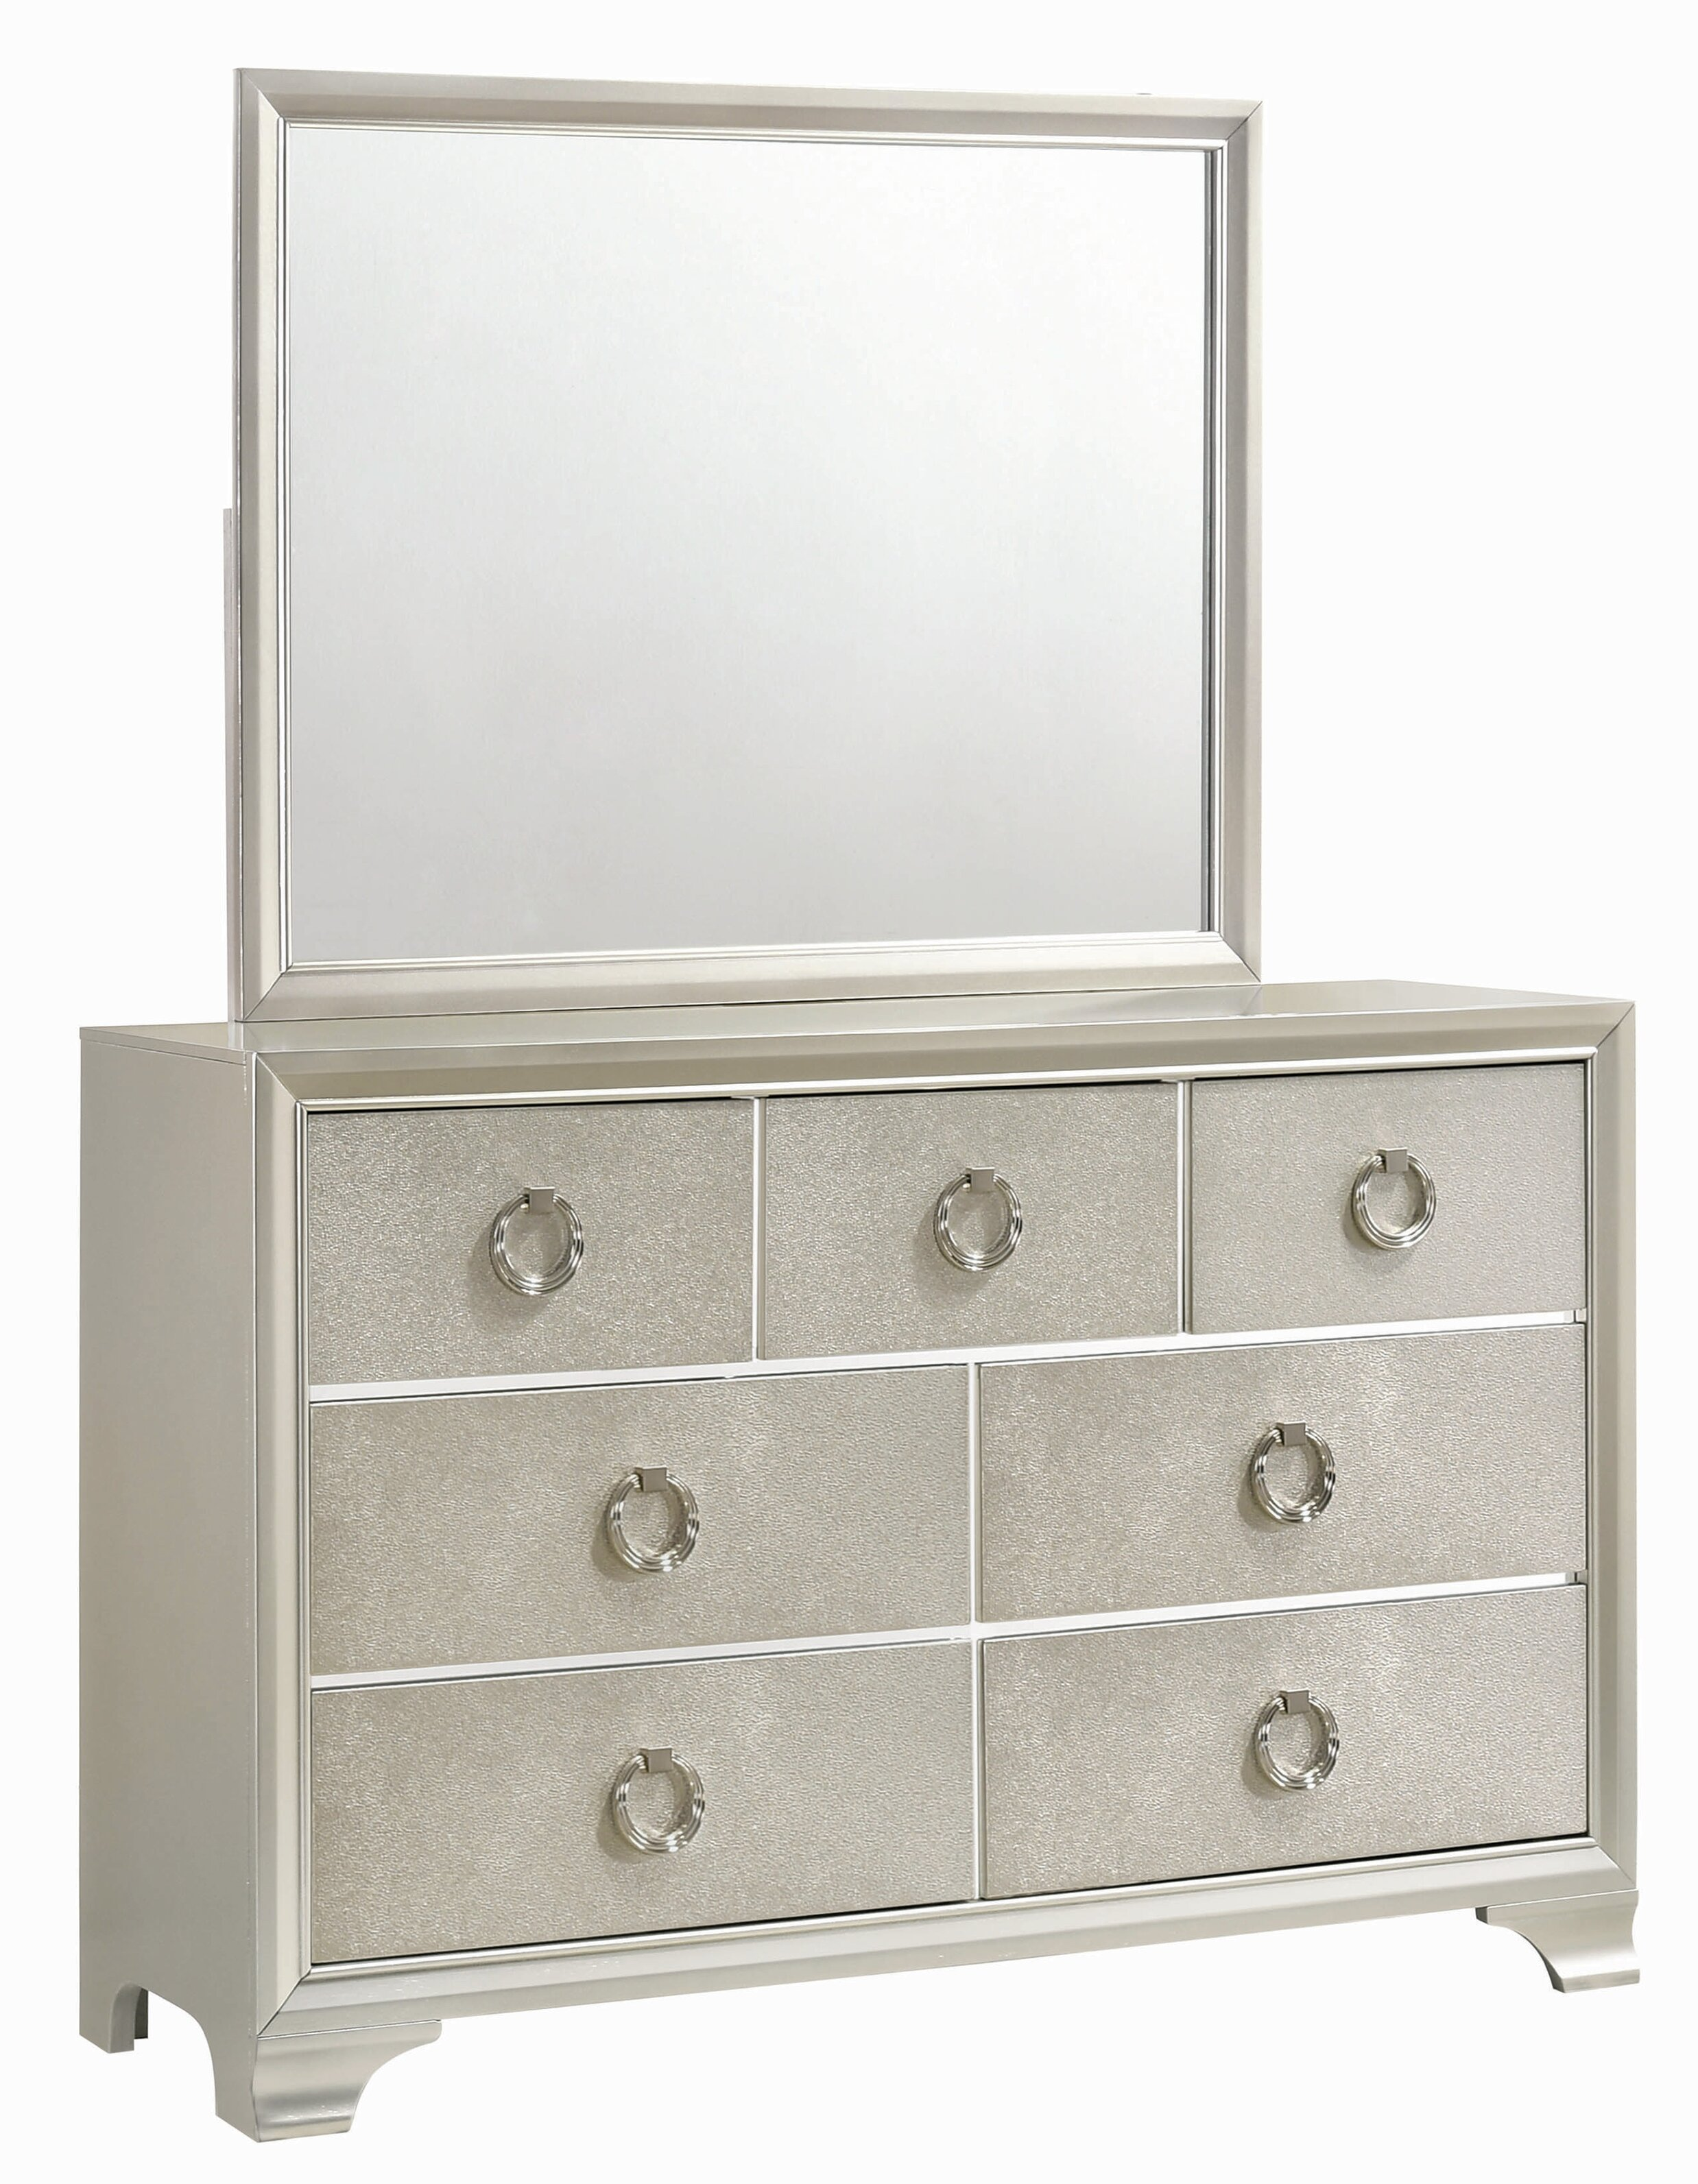 House Of Hampton Carpen 7 Drawer Double Dresser With Mirror Reviews Wayfair